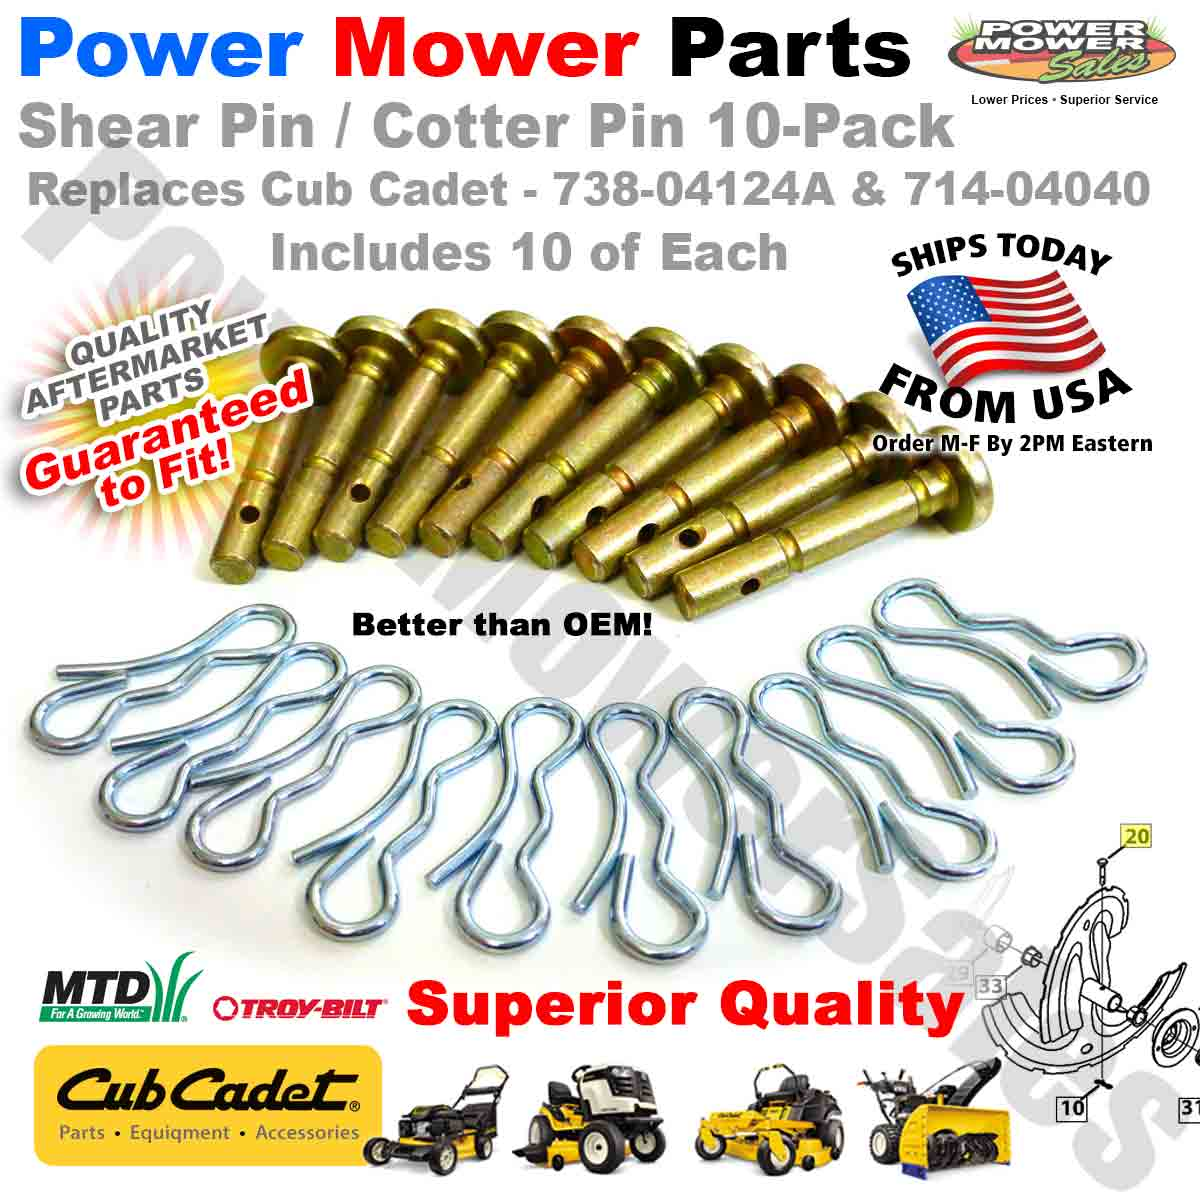 4 Cotter Pins 714-04040 for MTD Snow Blowers Shear Pins 73804124A with 4